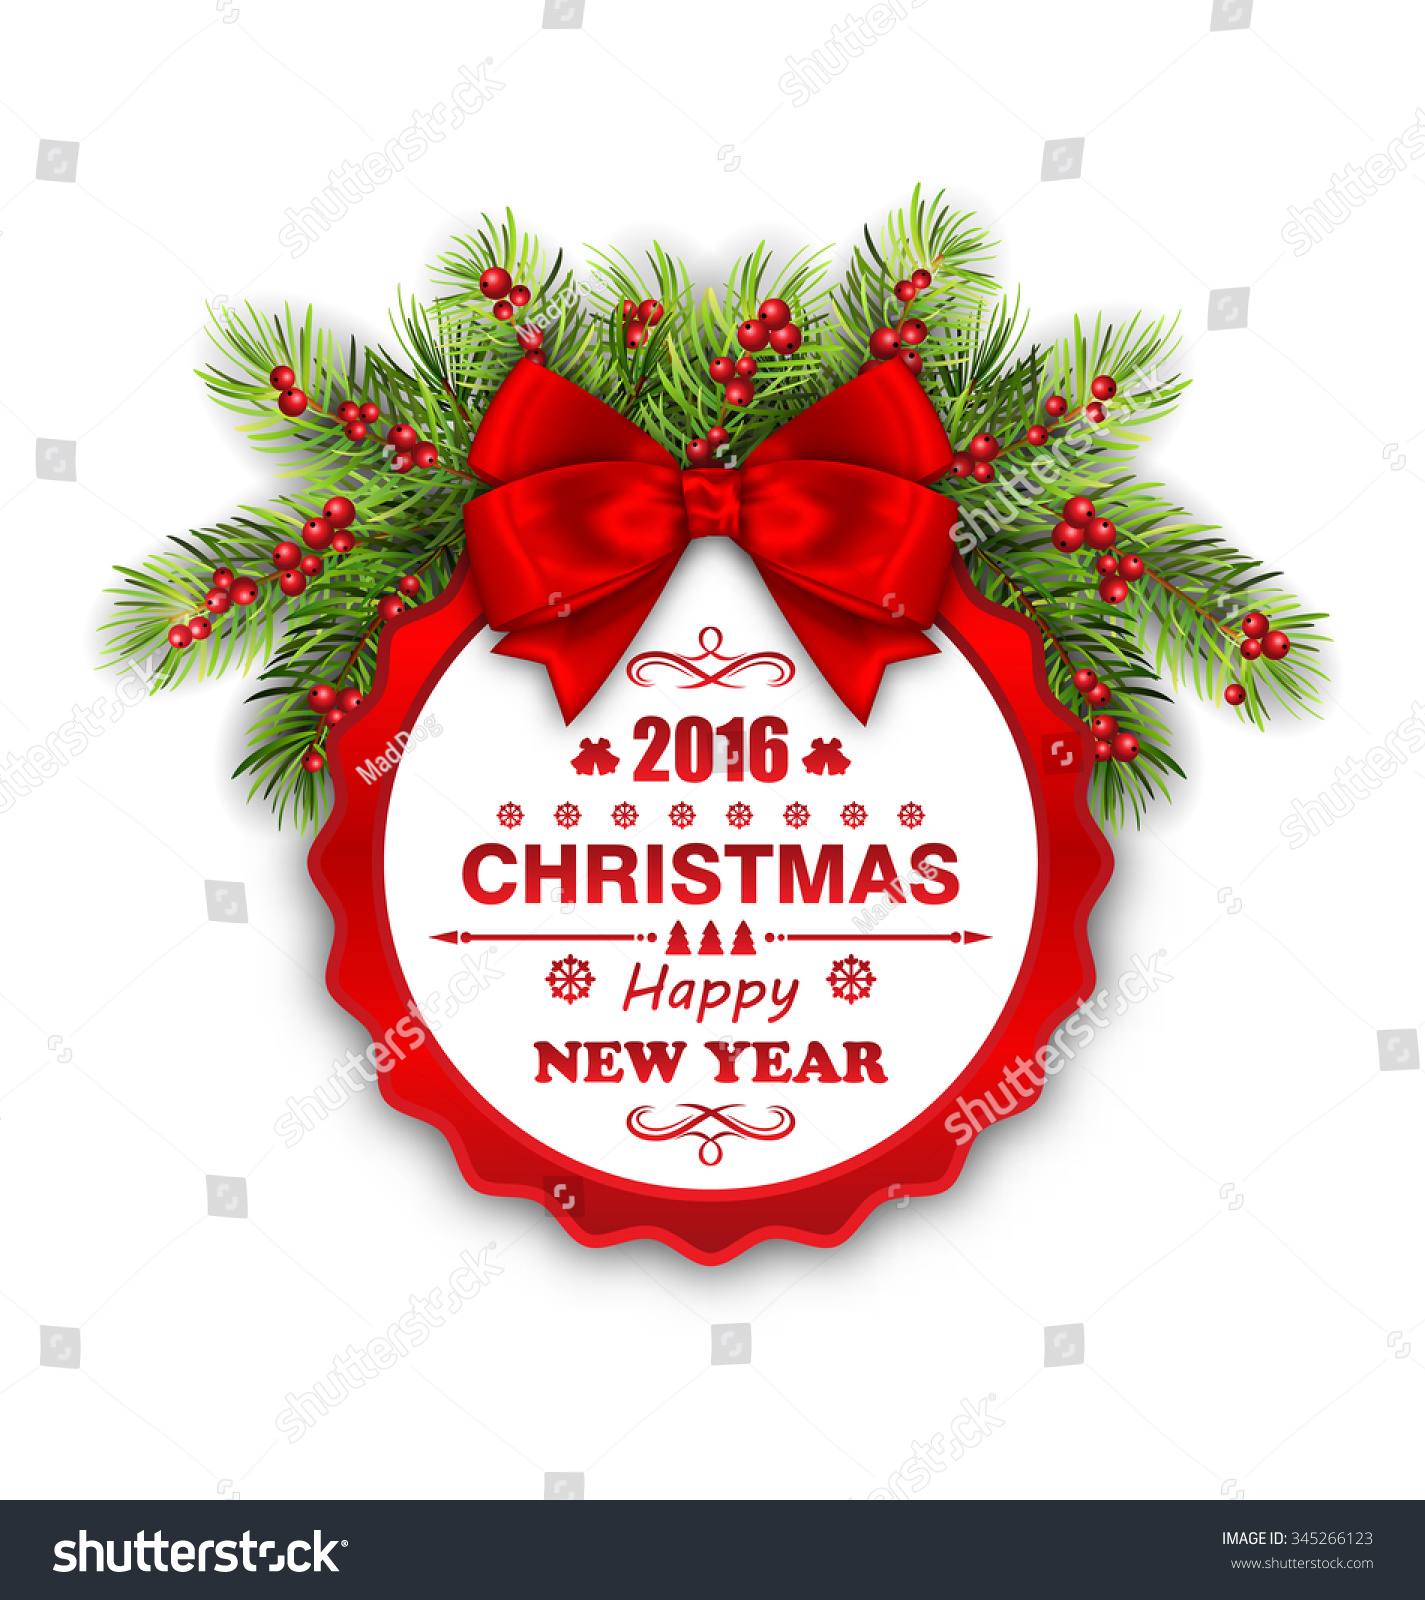 Merry Christmas Images Merry Xmas 2018 Pictures Quotes